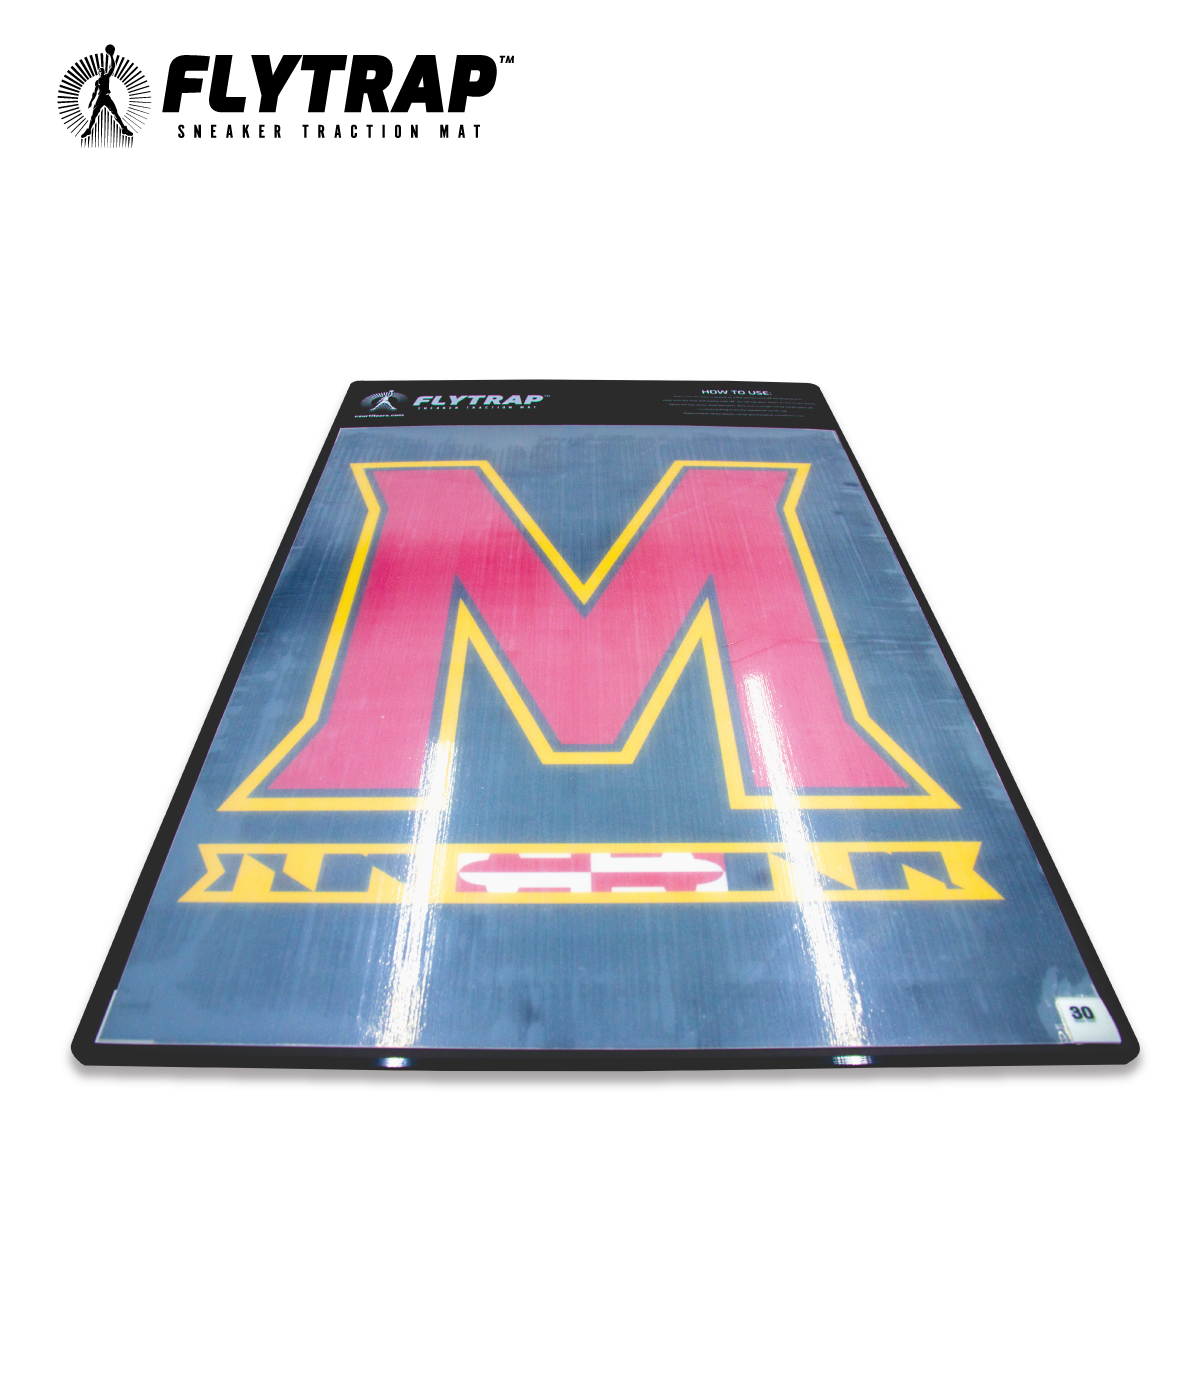 FLYTRAP SNEAKER TRACTION MAT FOR BASKETBALL AND VOLLEYBALL WITH 30 STICKY SHEETS